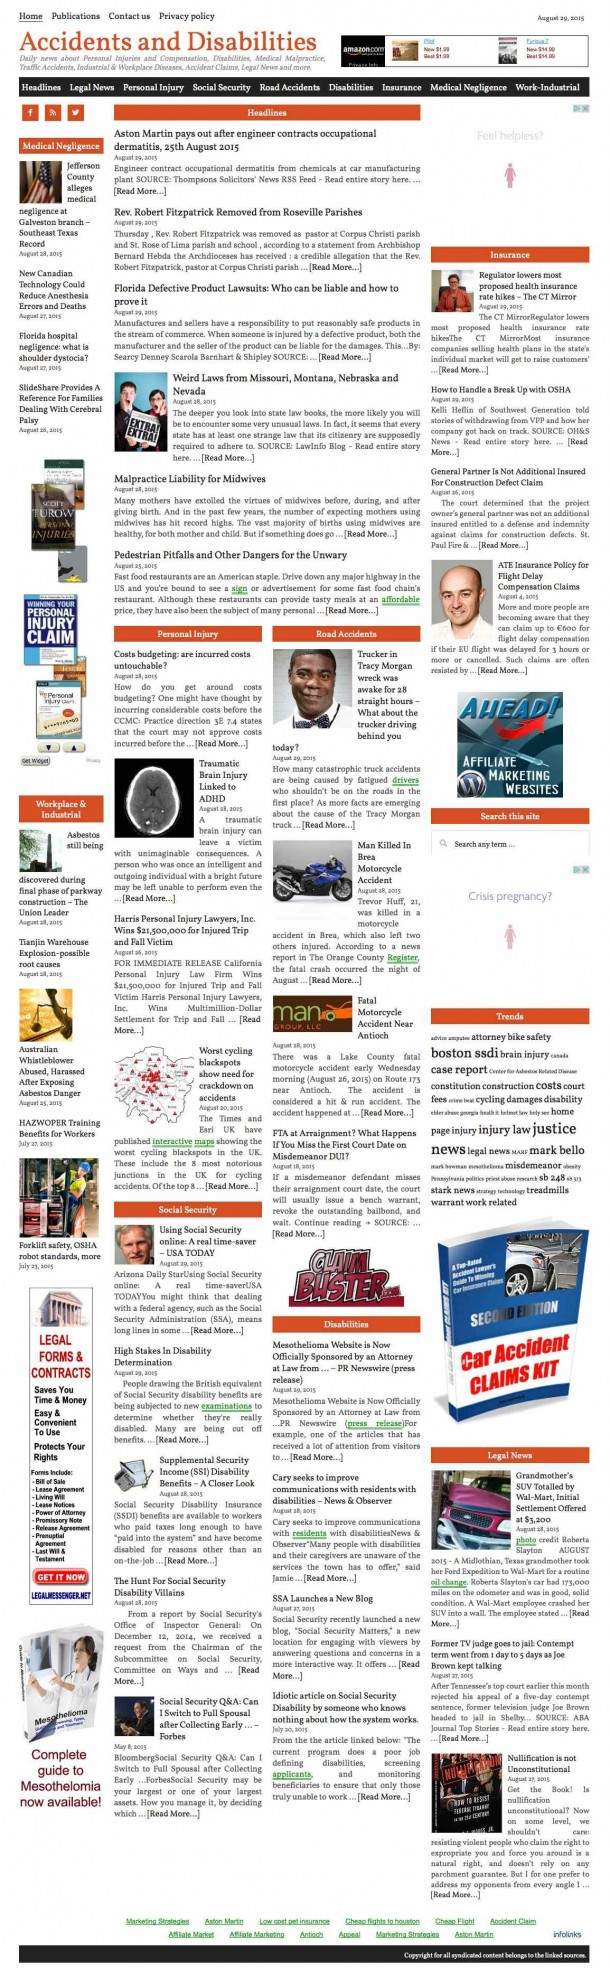 Accidents_and_Disabilities_Daily_news_about_Personal_Injuries_and_Compensation,_Disabilities,_Medical_Malpractice,_Traffic_Accidents,_Industrial_&_Workplace_Diseases,_Accident_Claims,_Legal_News_and_more.